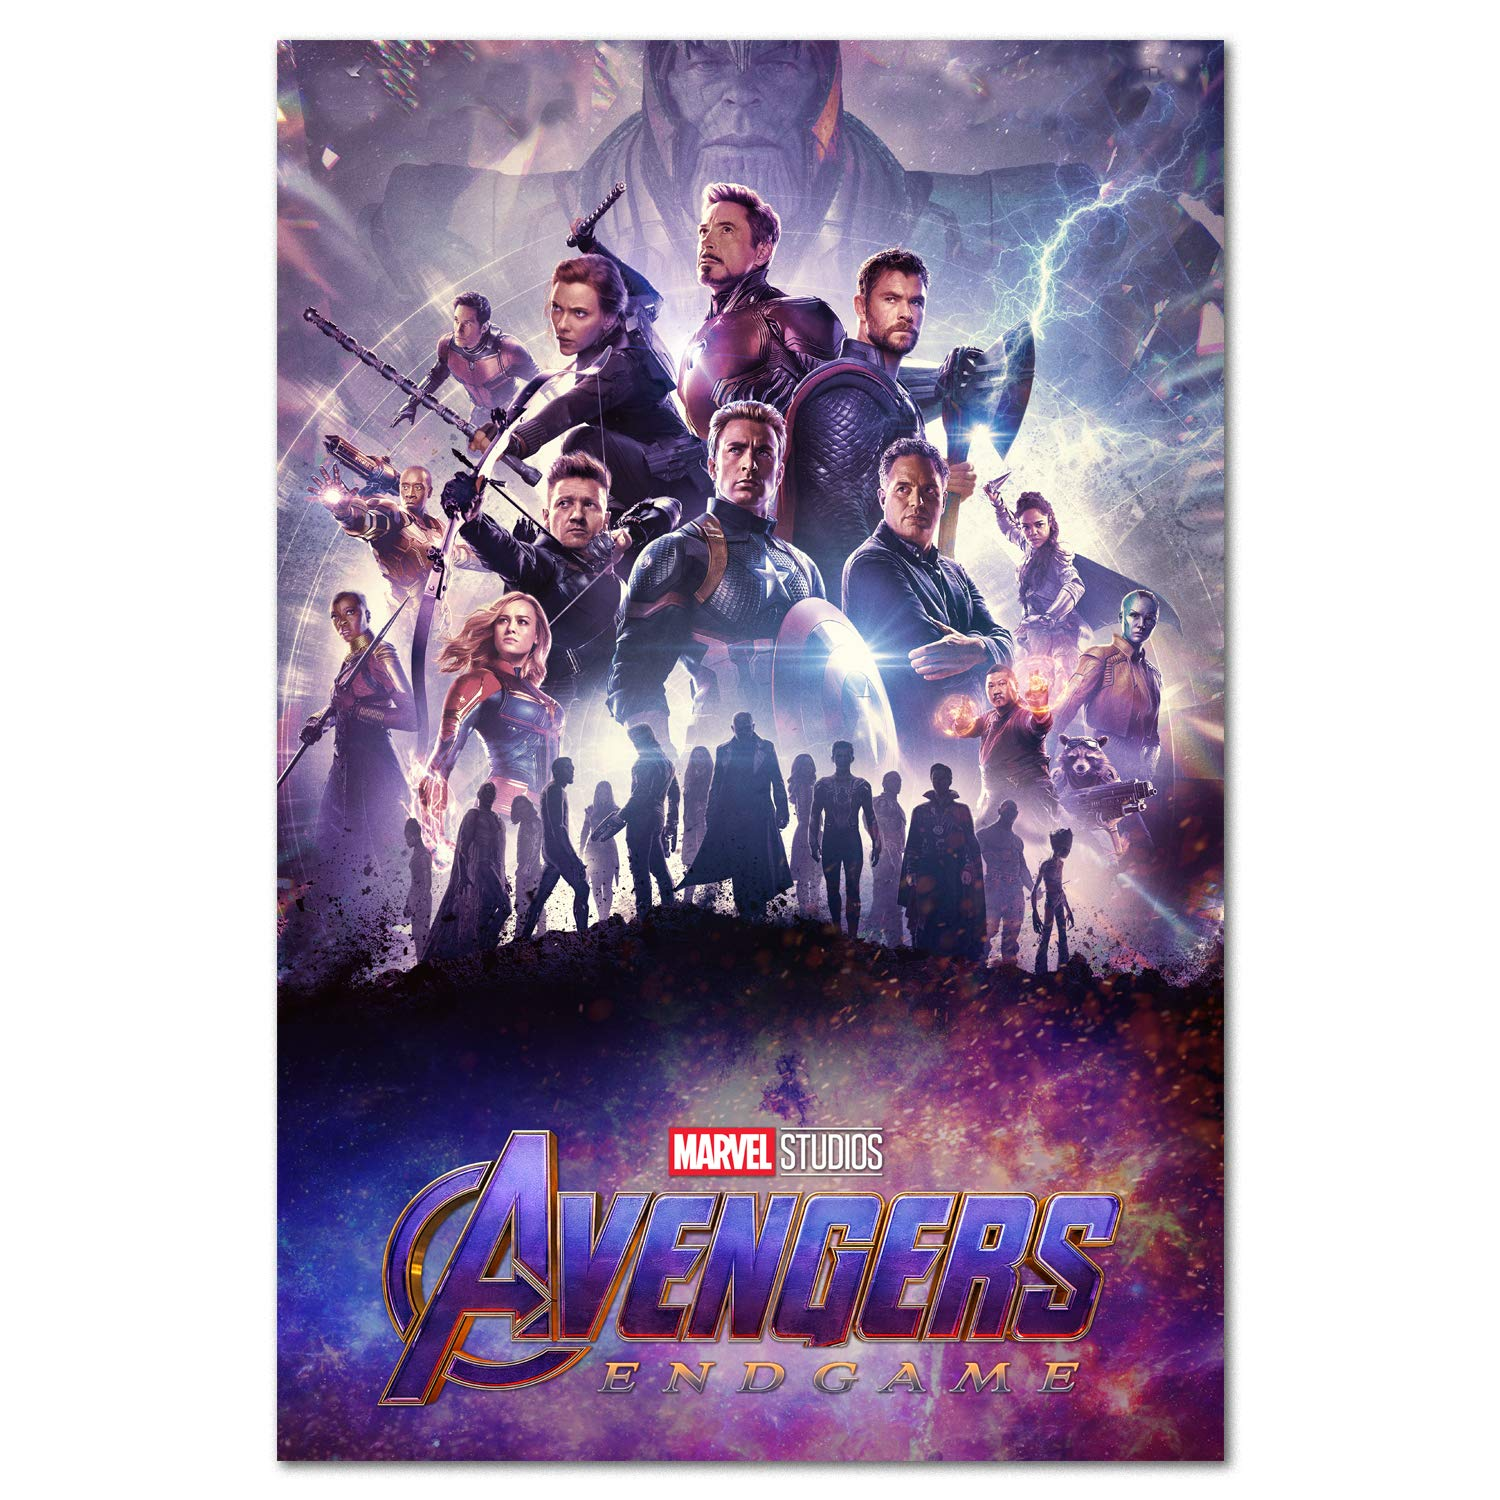 Avengers Endgame Poster - International Art - 2019 Marvel Movie (24x36)